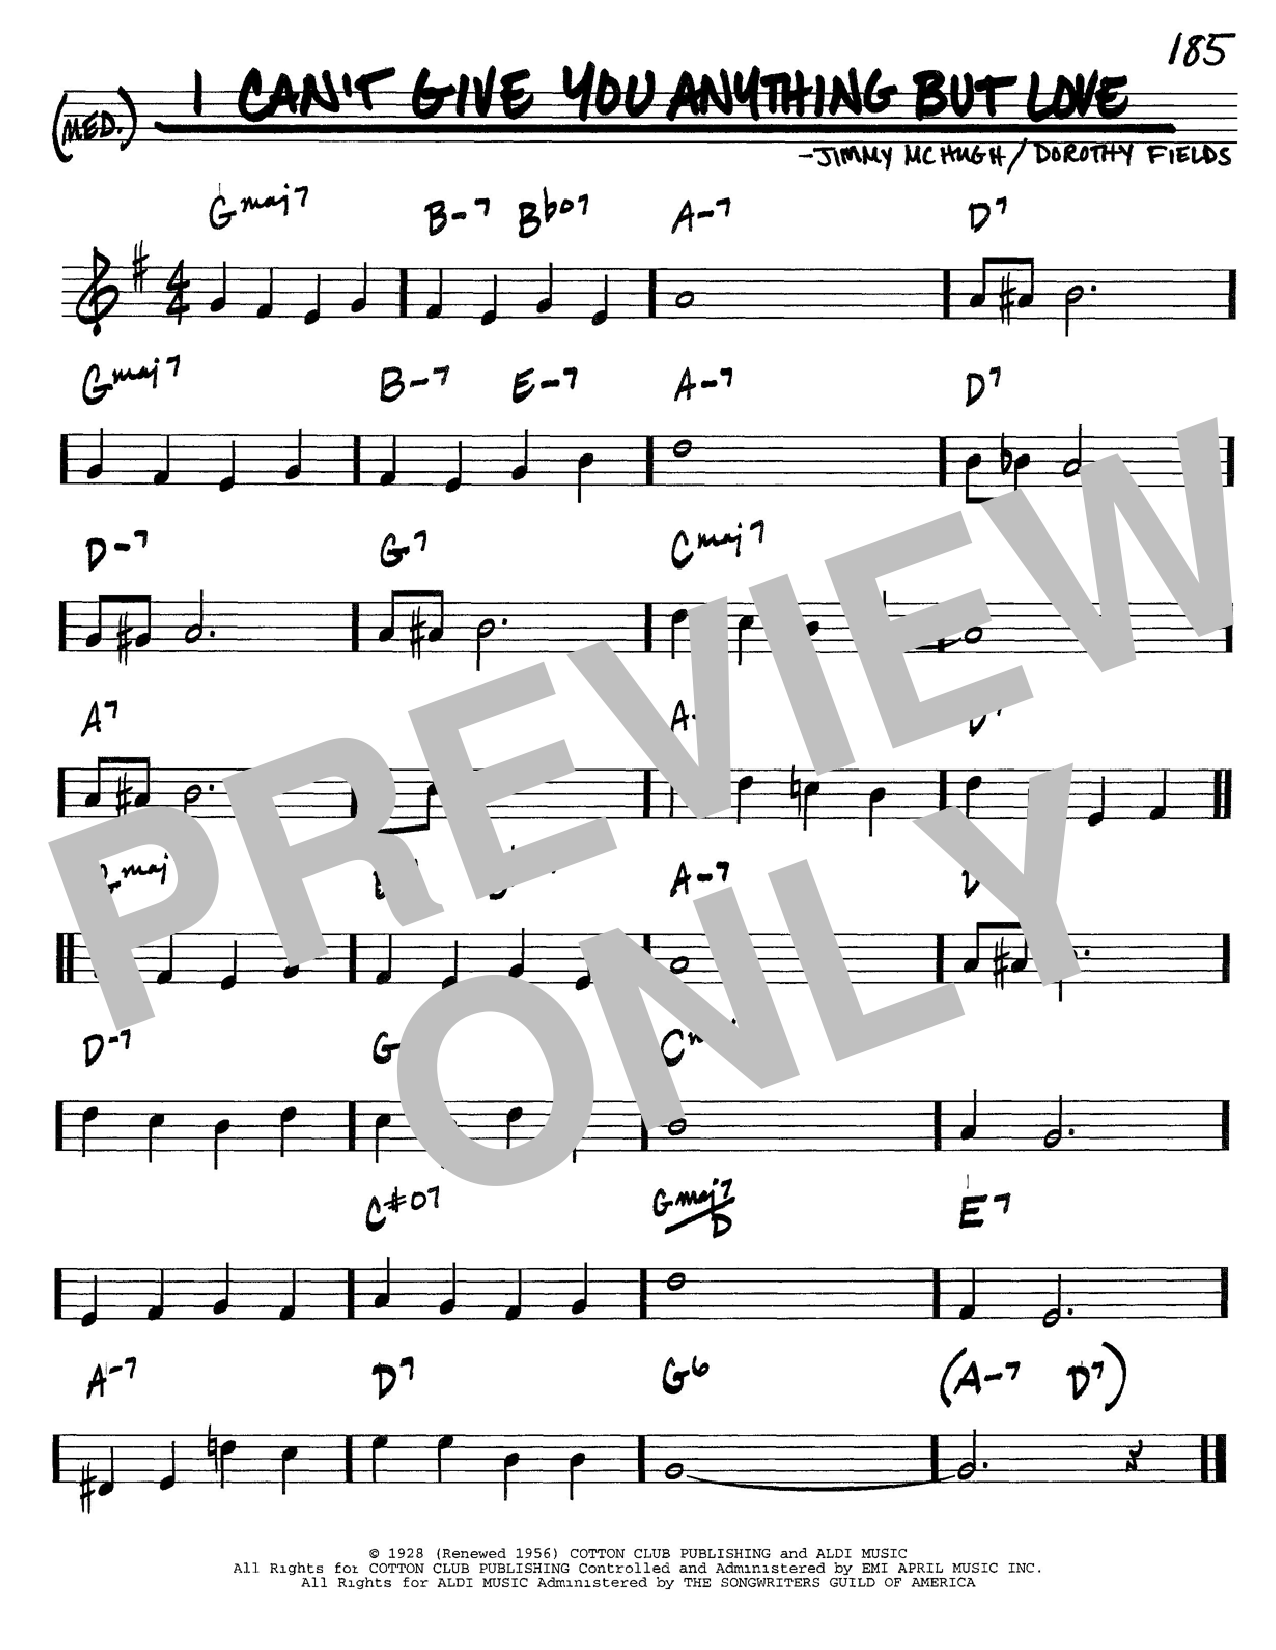 Dorothy Fields I Can't Give You Anything But Love sheet music notes and chords. Download Printable PDF.